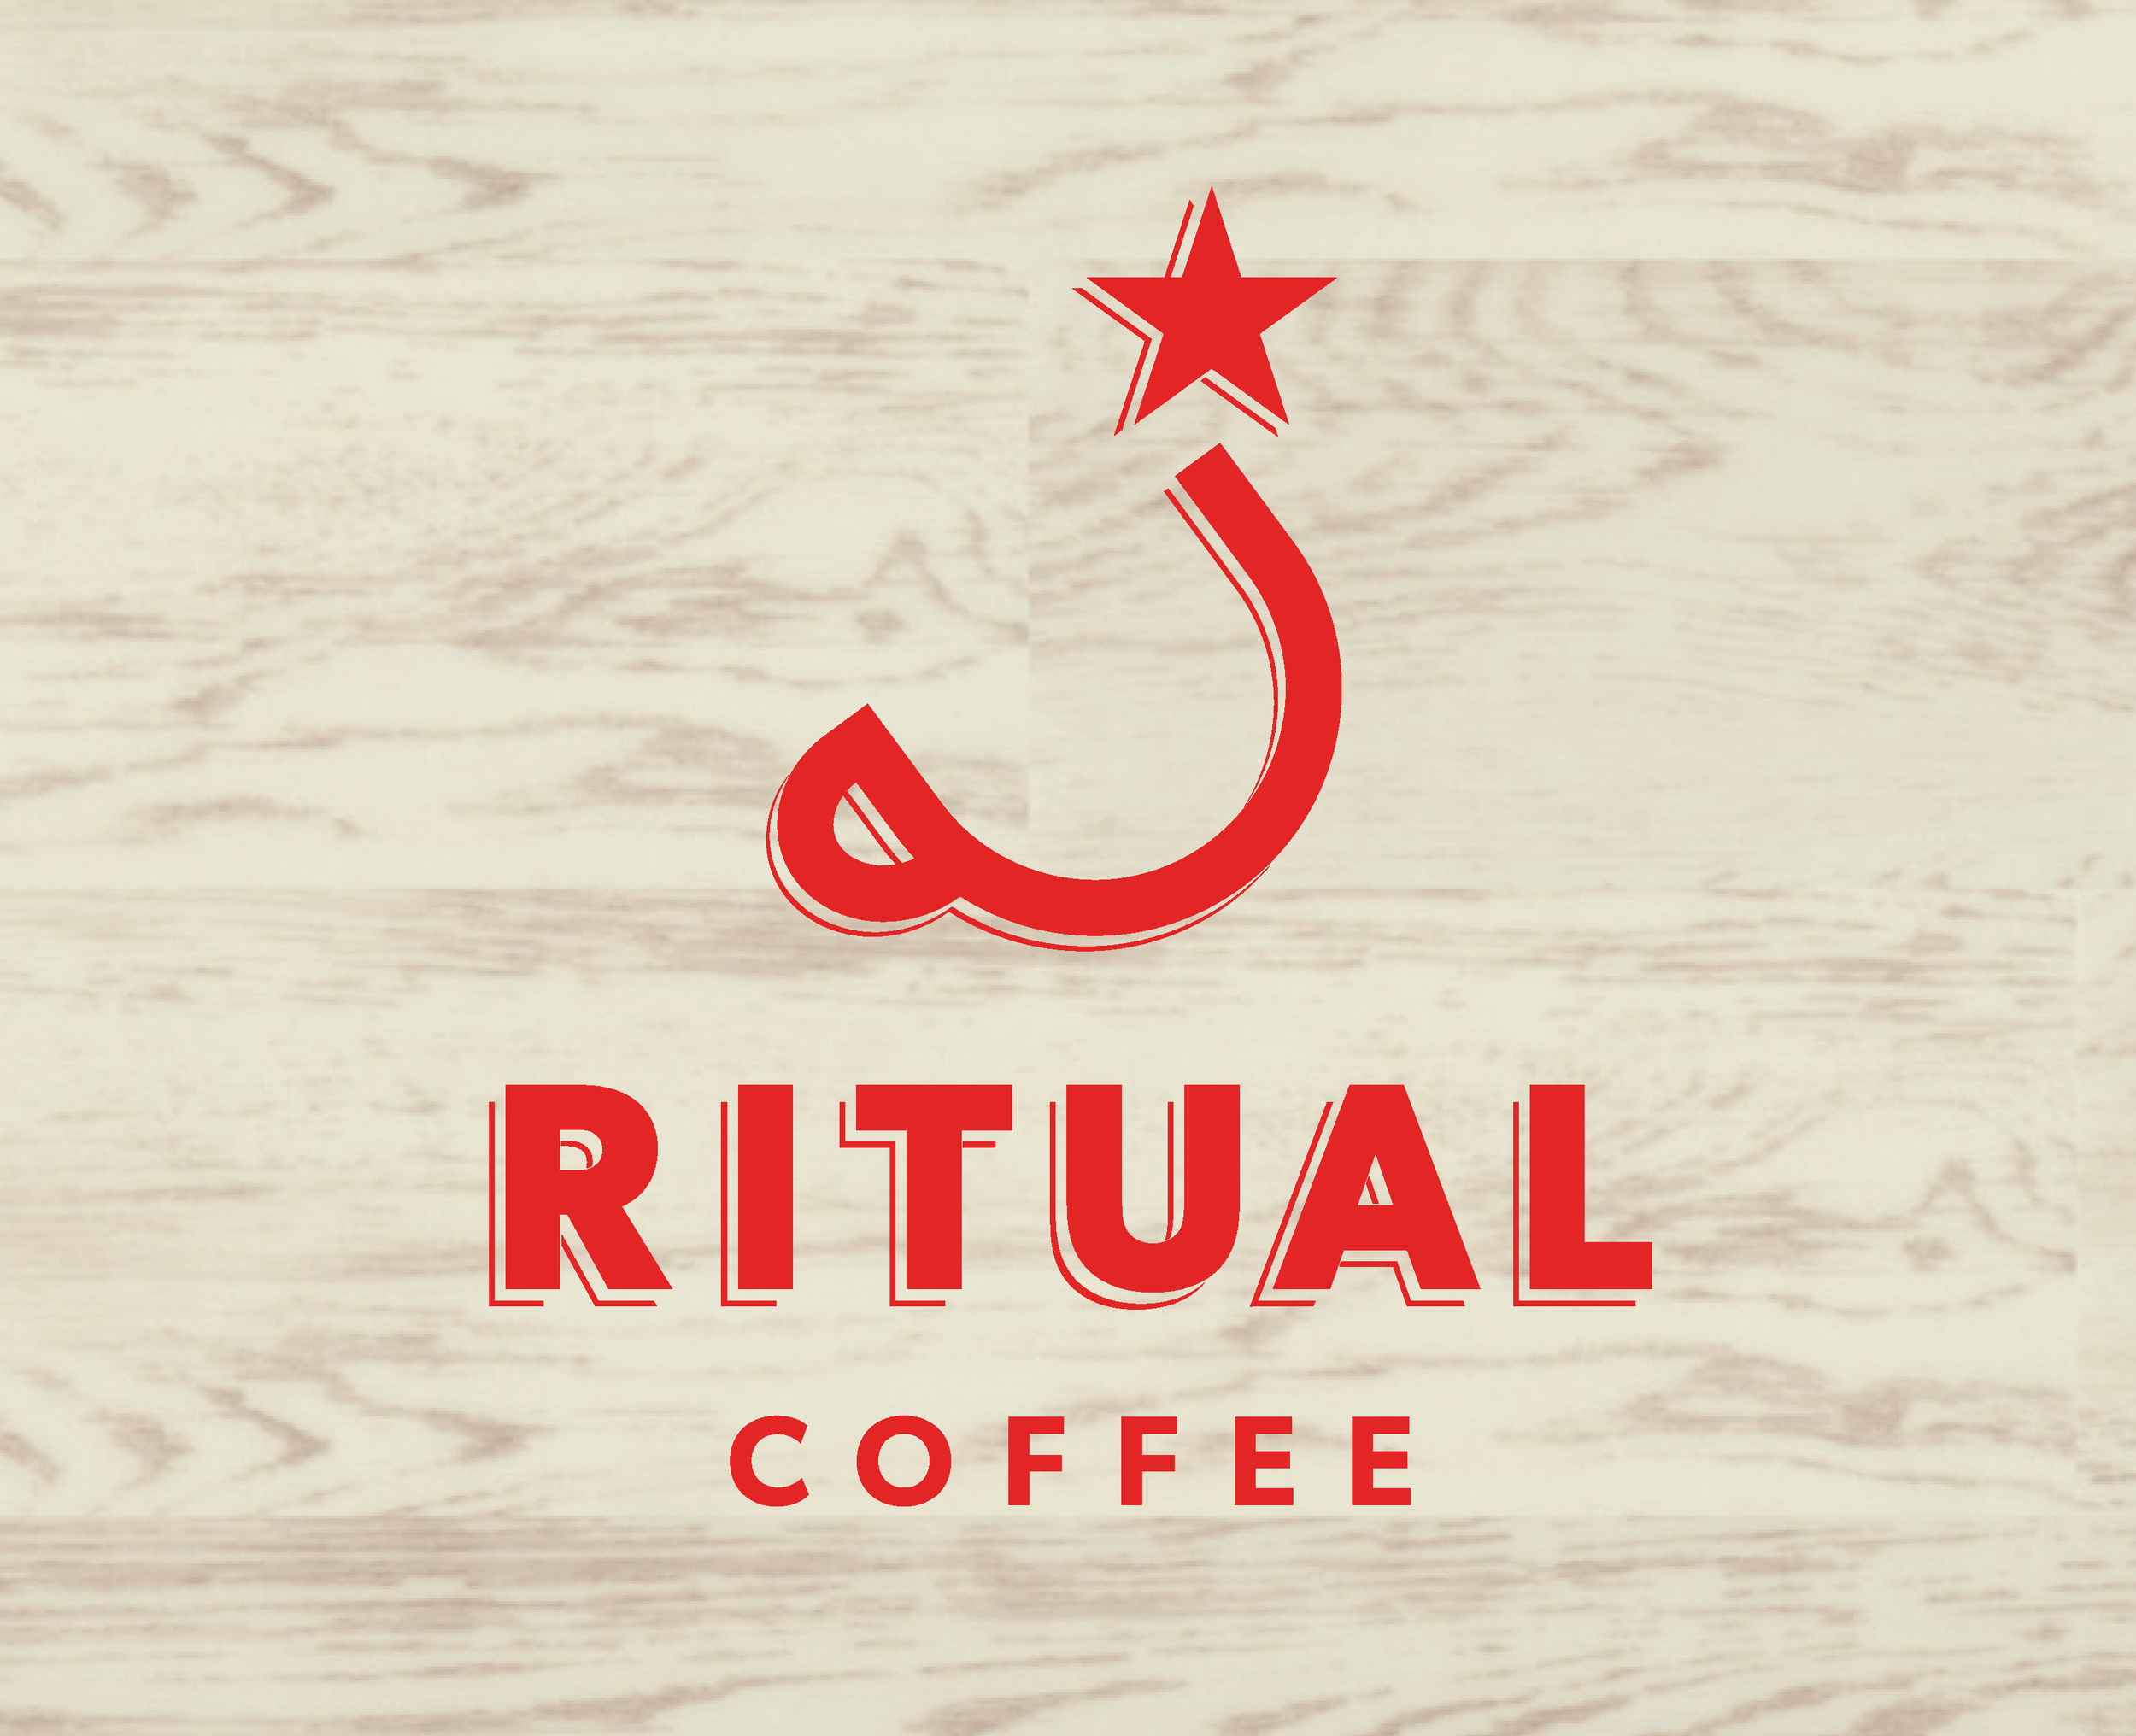 Ritual Coffee Kiosk Hours  Monday - Thursday 9 - 4 Friday - Saturday 9 - 4:30 Sunday - 10 - 4:30